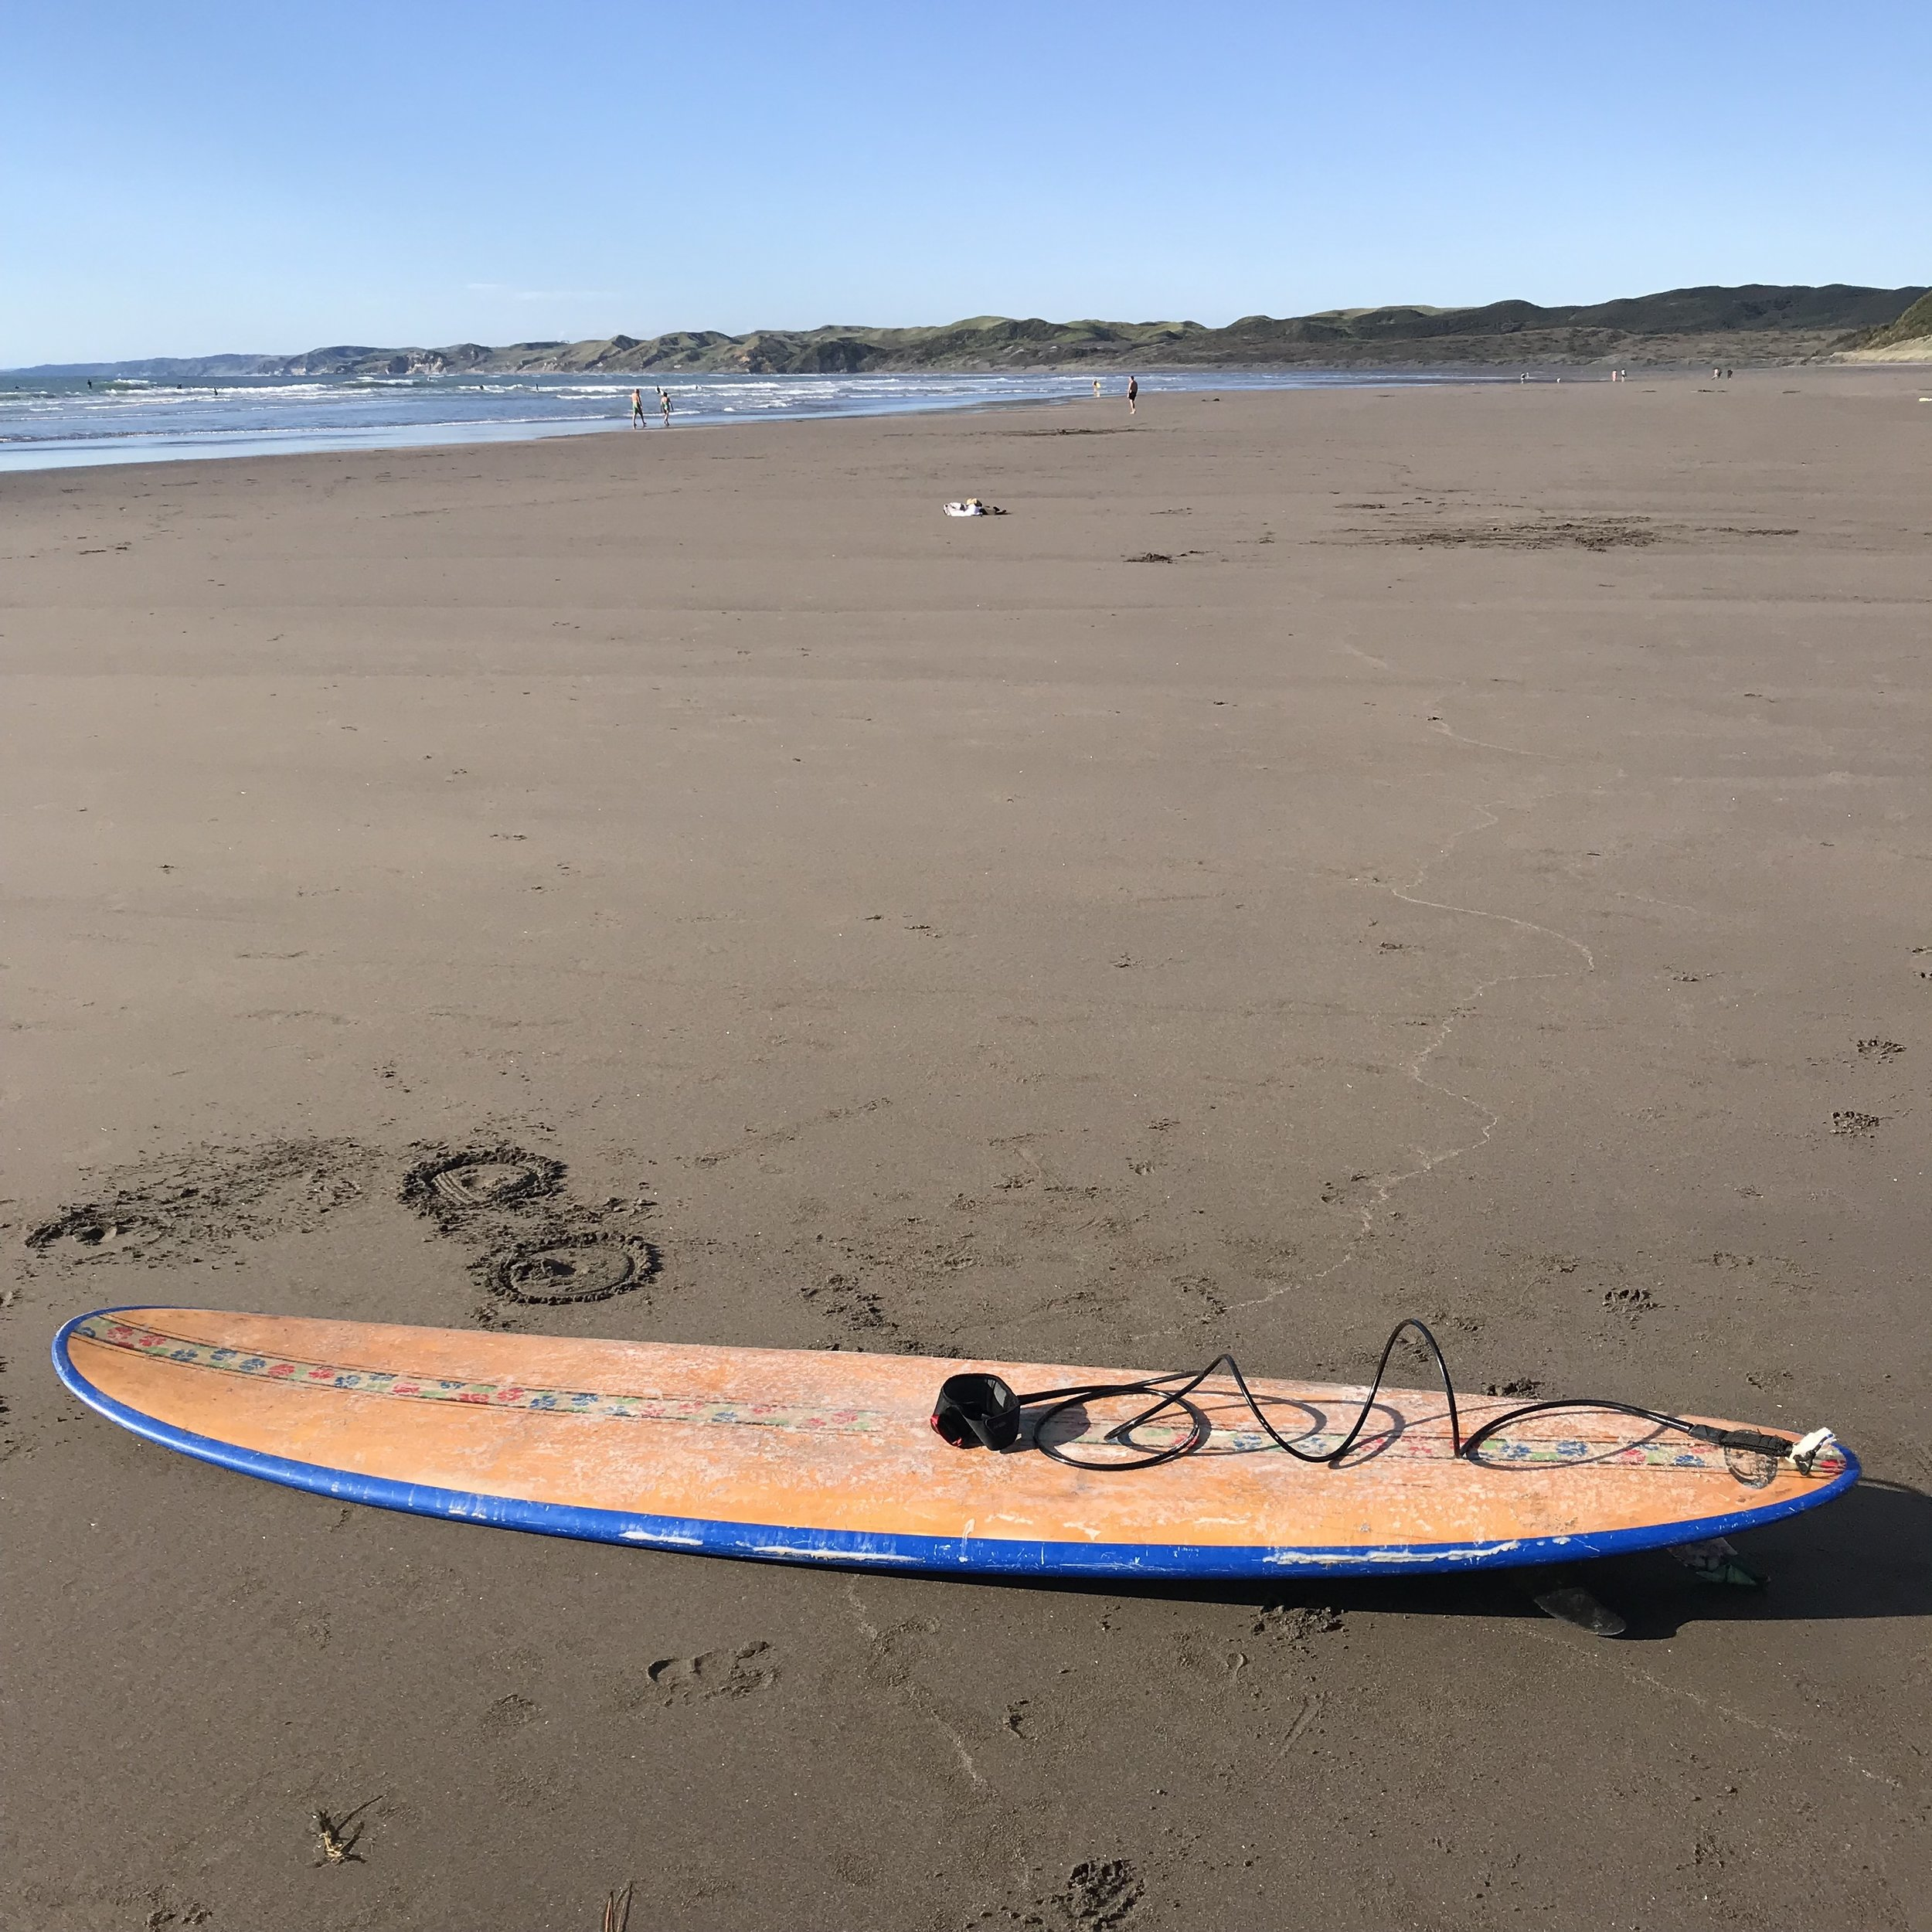 A long board on the amazing Manu Bay beach in Raglan. I can't wait to tell you more about the North Island, so far it seems highly underrated to me.